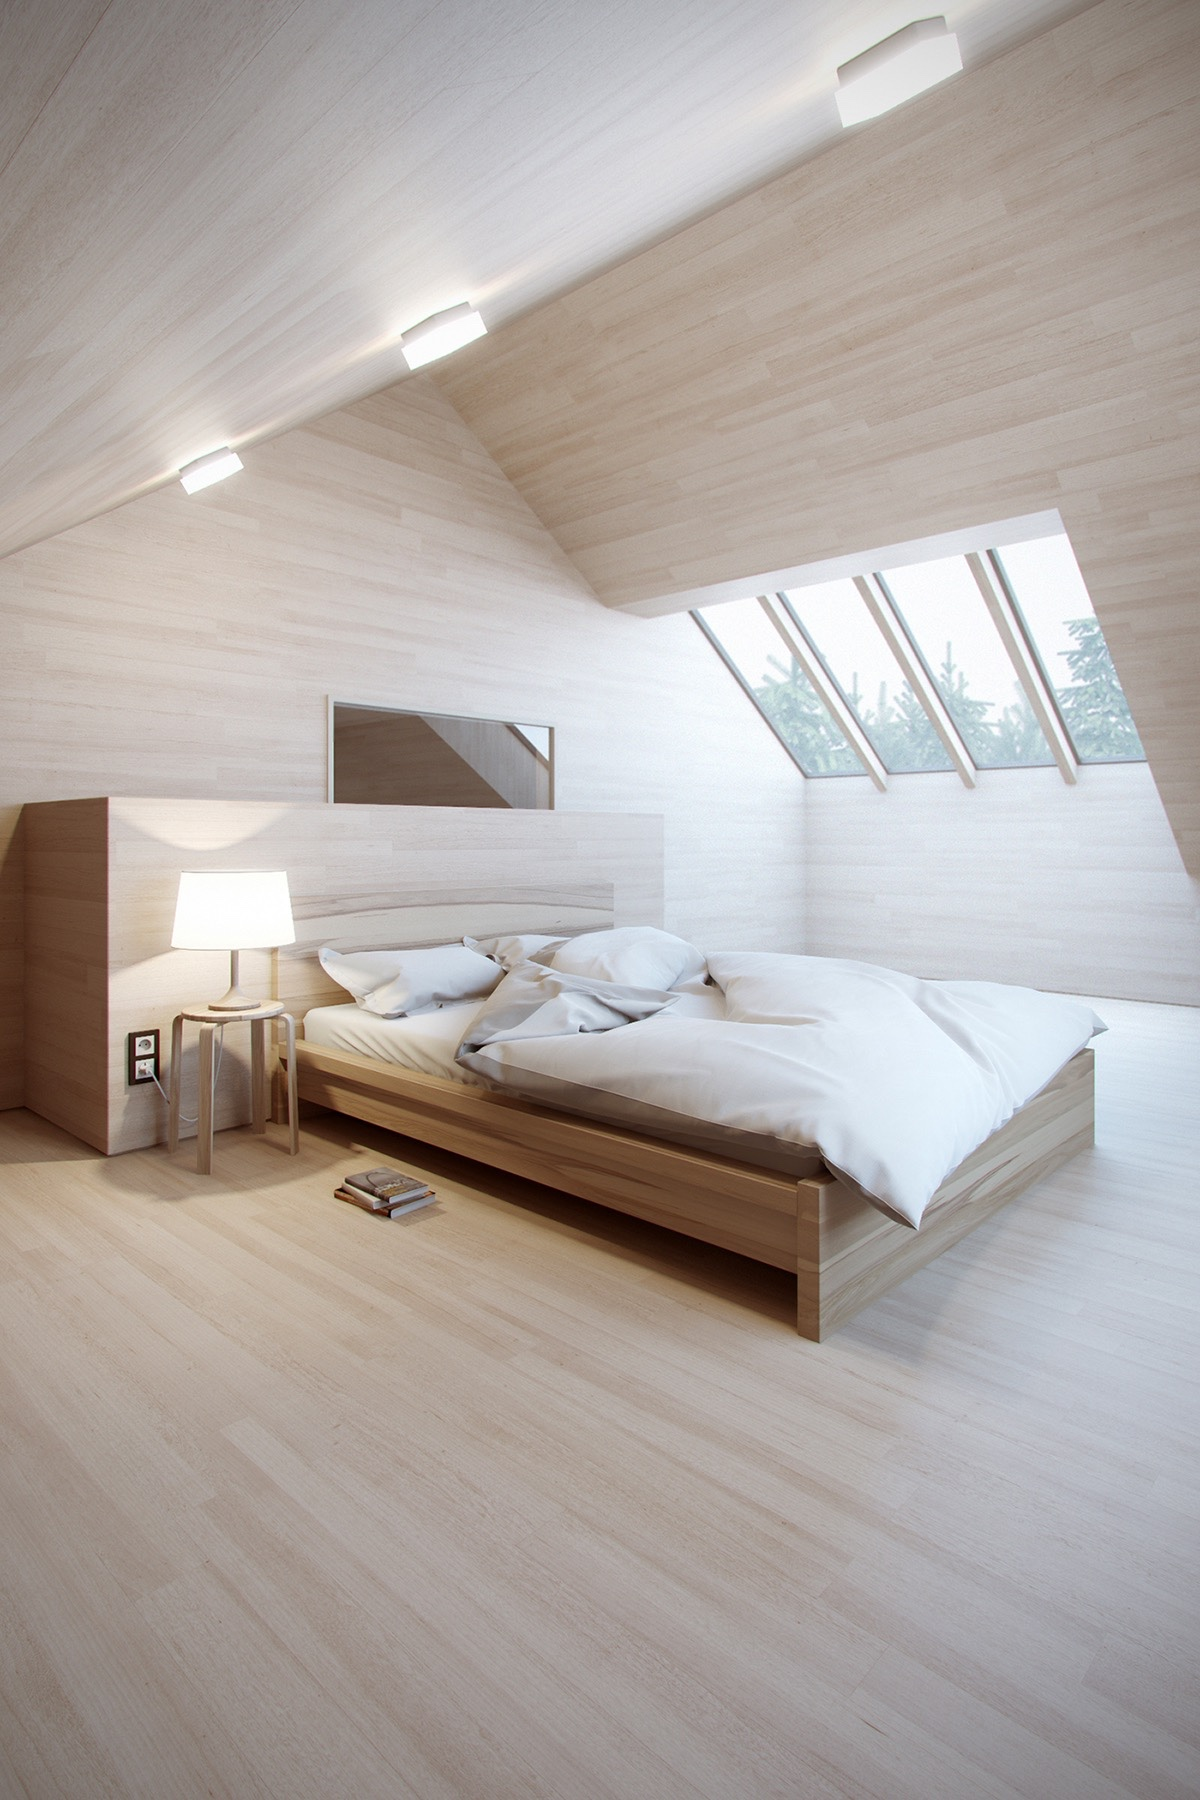 Natural Wood Attic Bedroom Natural Light - 25 amazing attic bedrooms that you would absolutely enjoy sleeping in